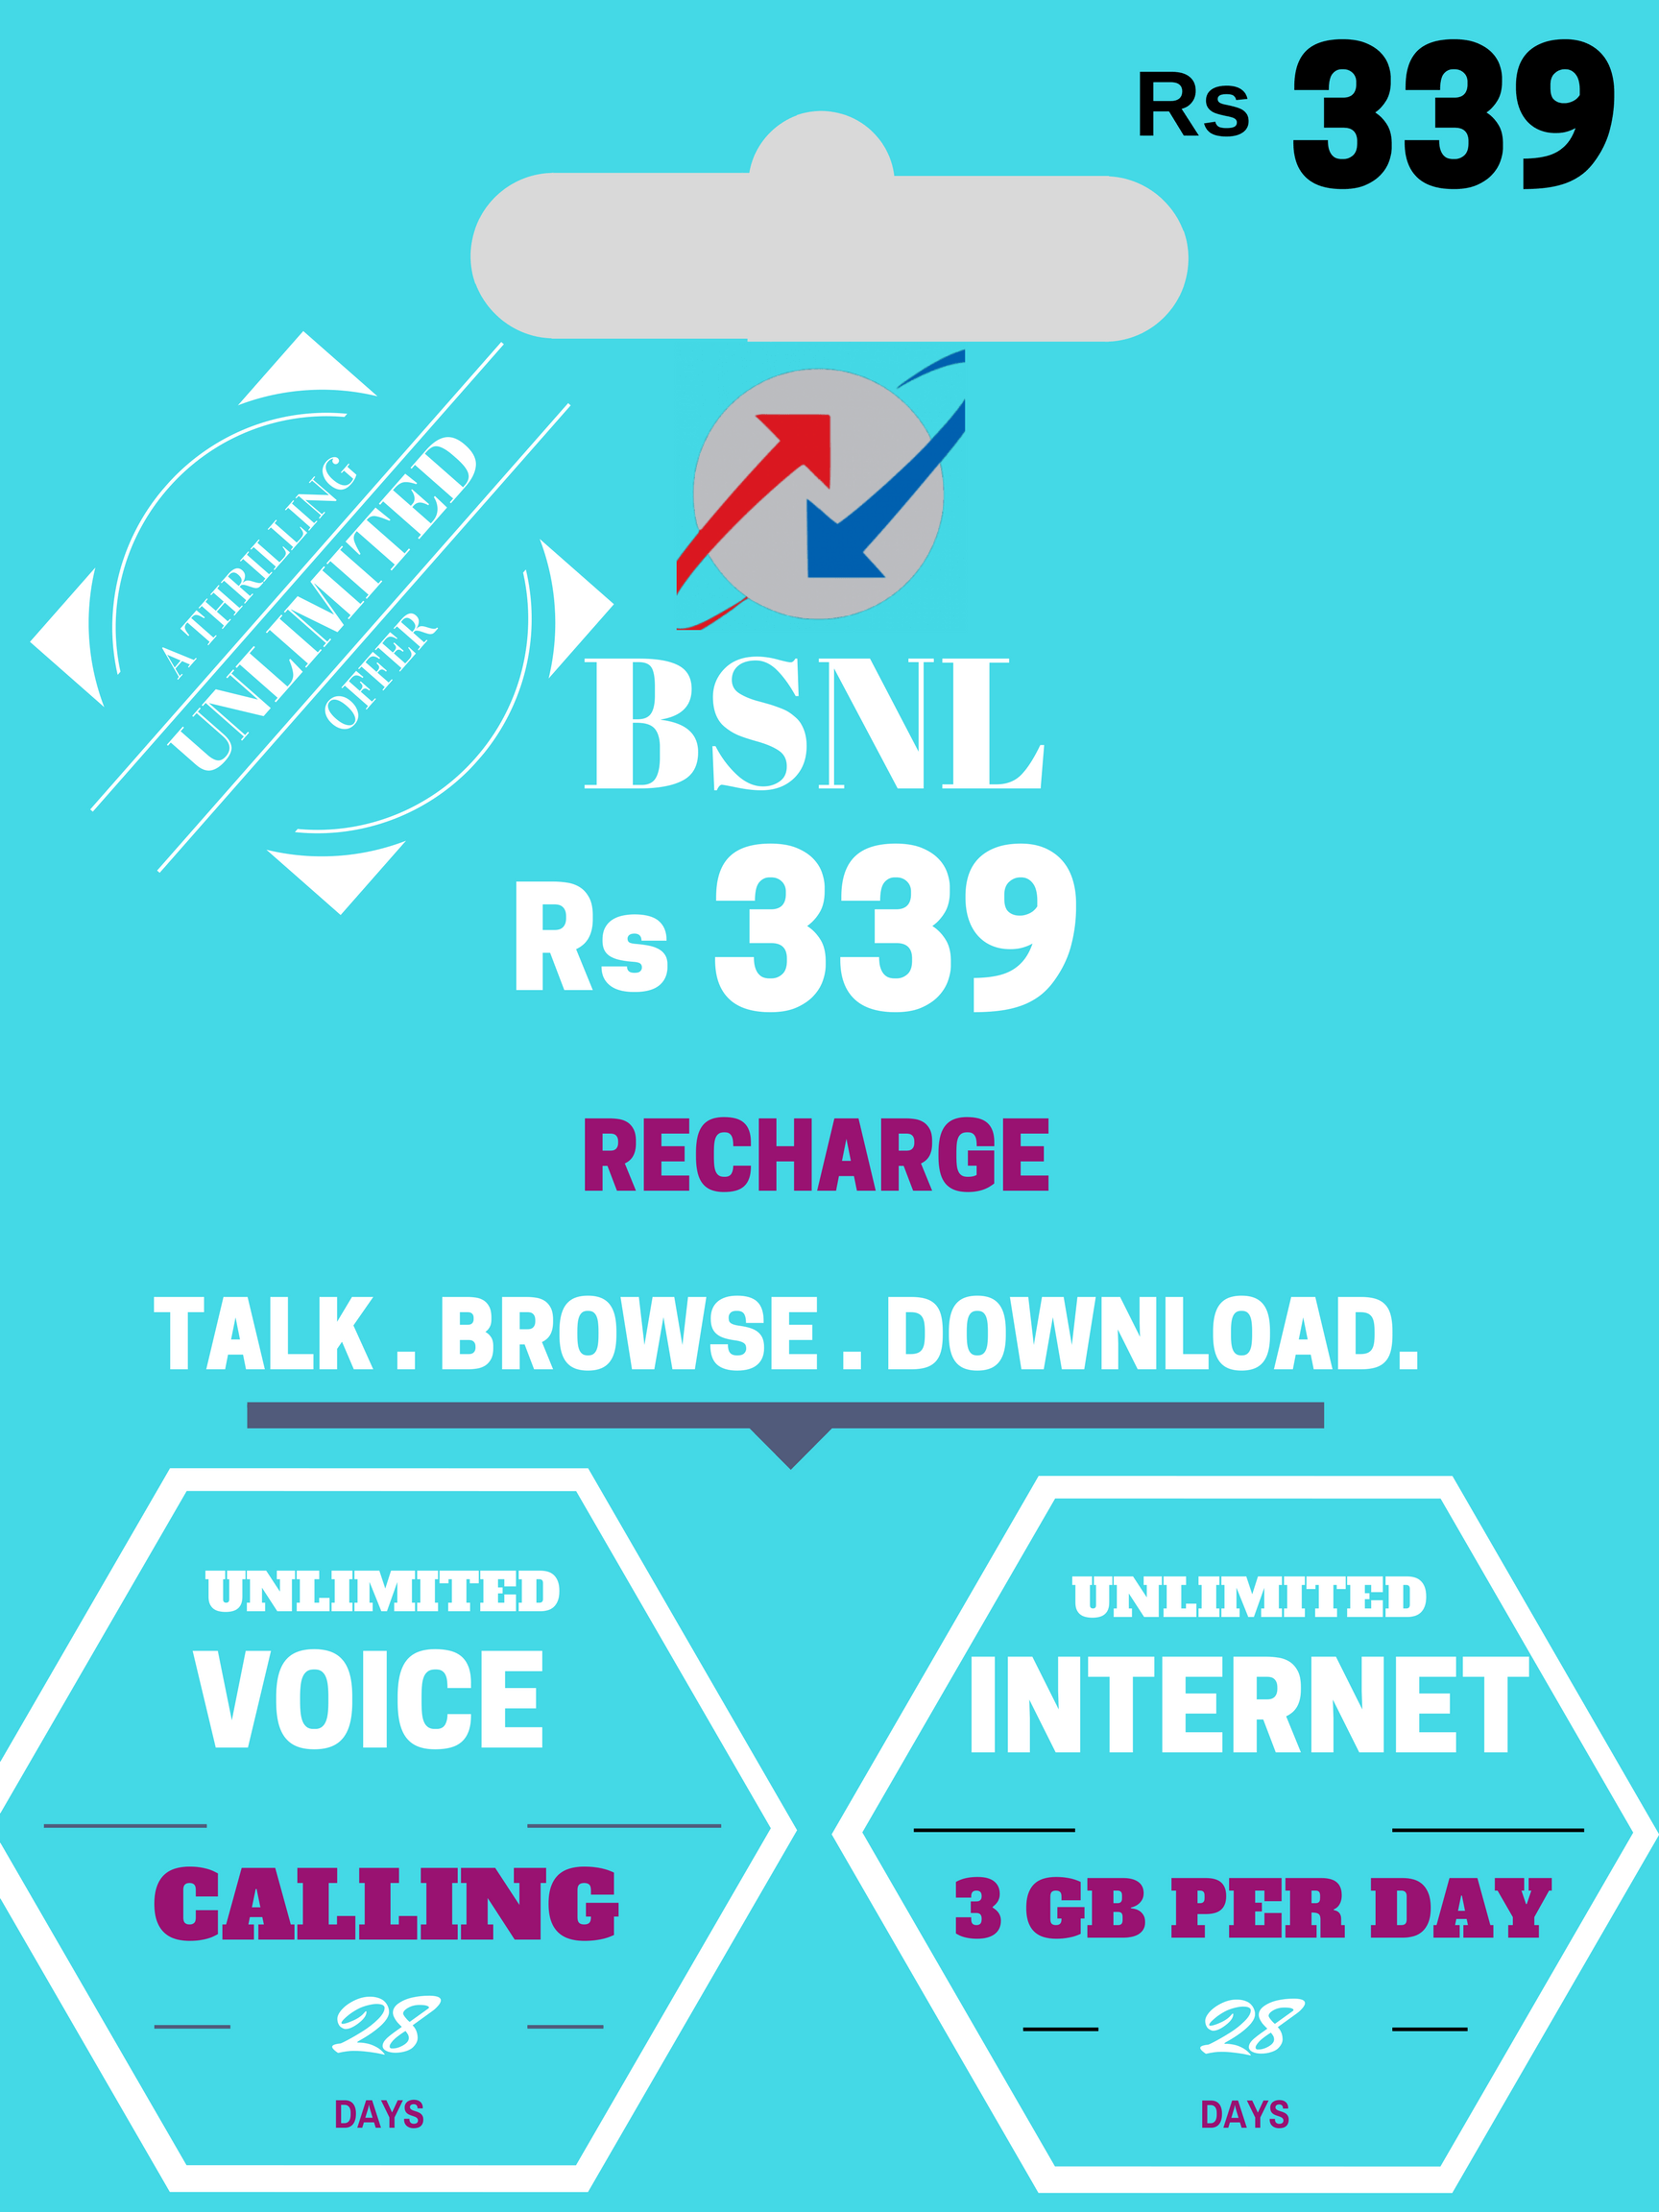 bsnl-339-plan-bsnl-new-offer